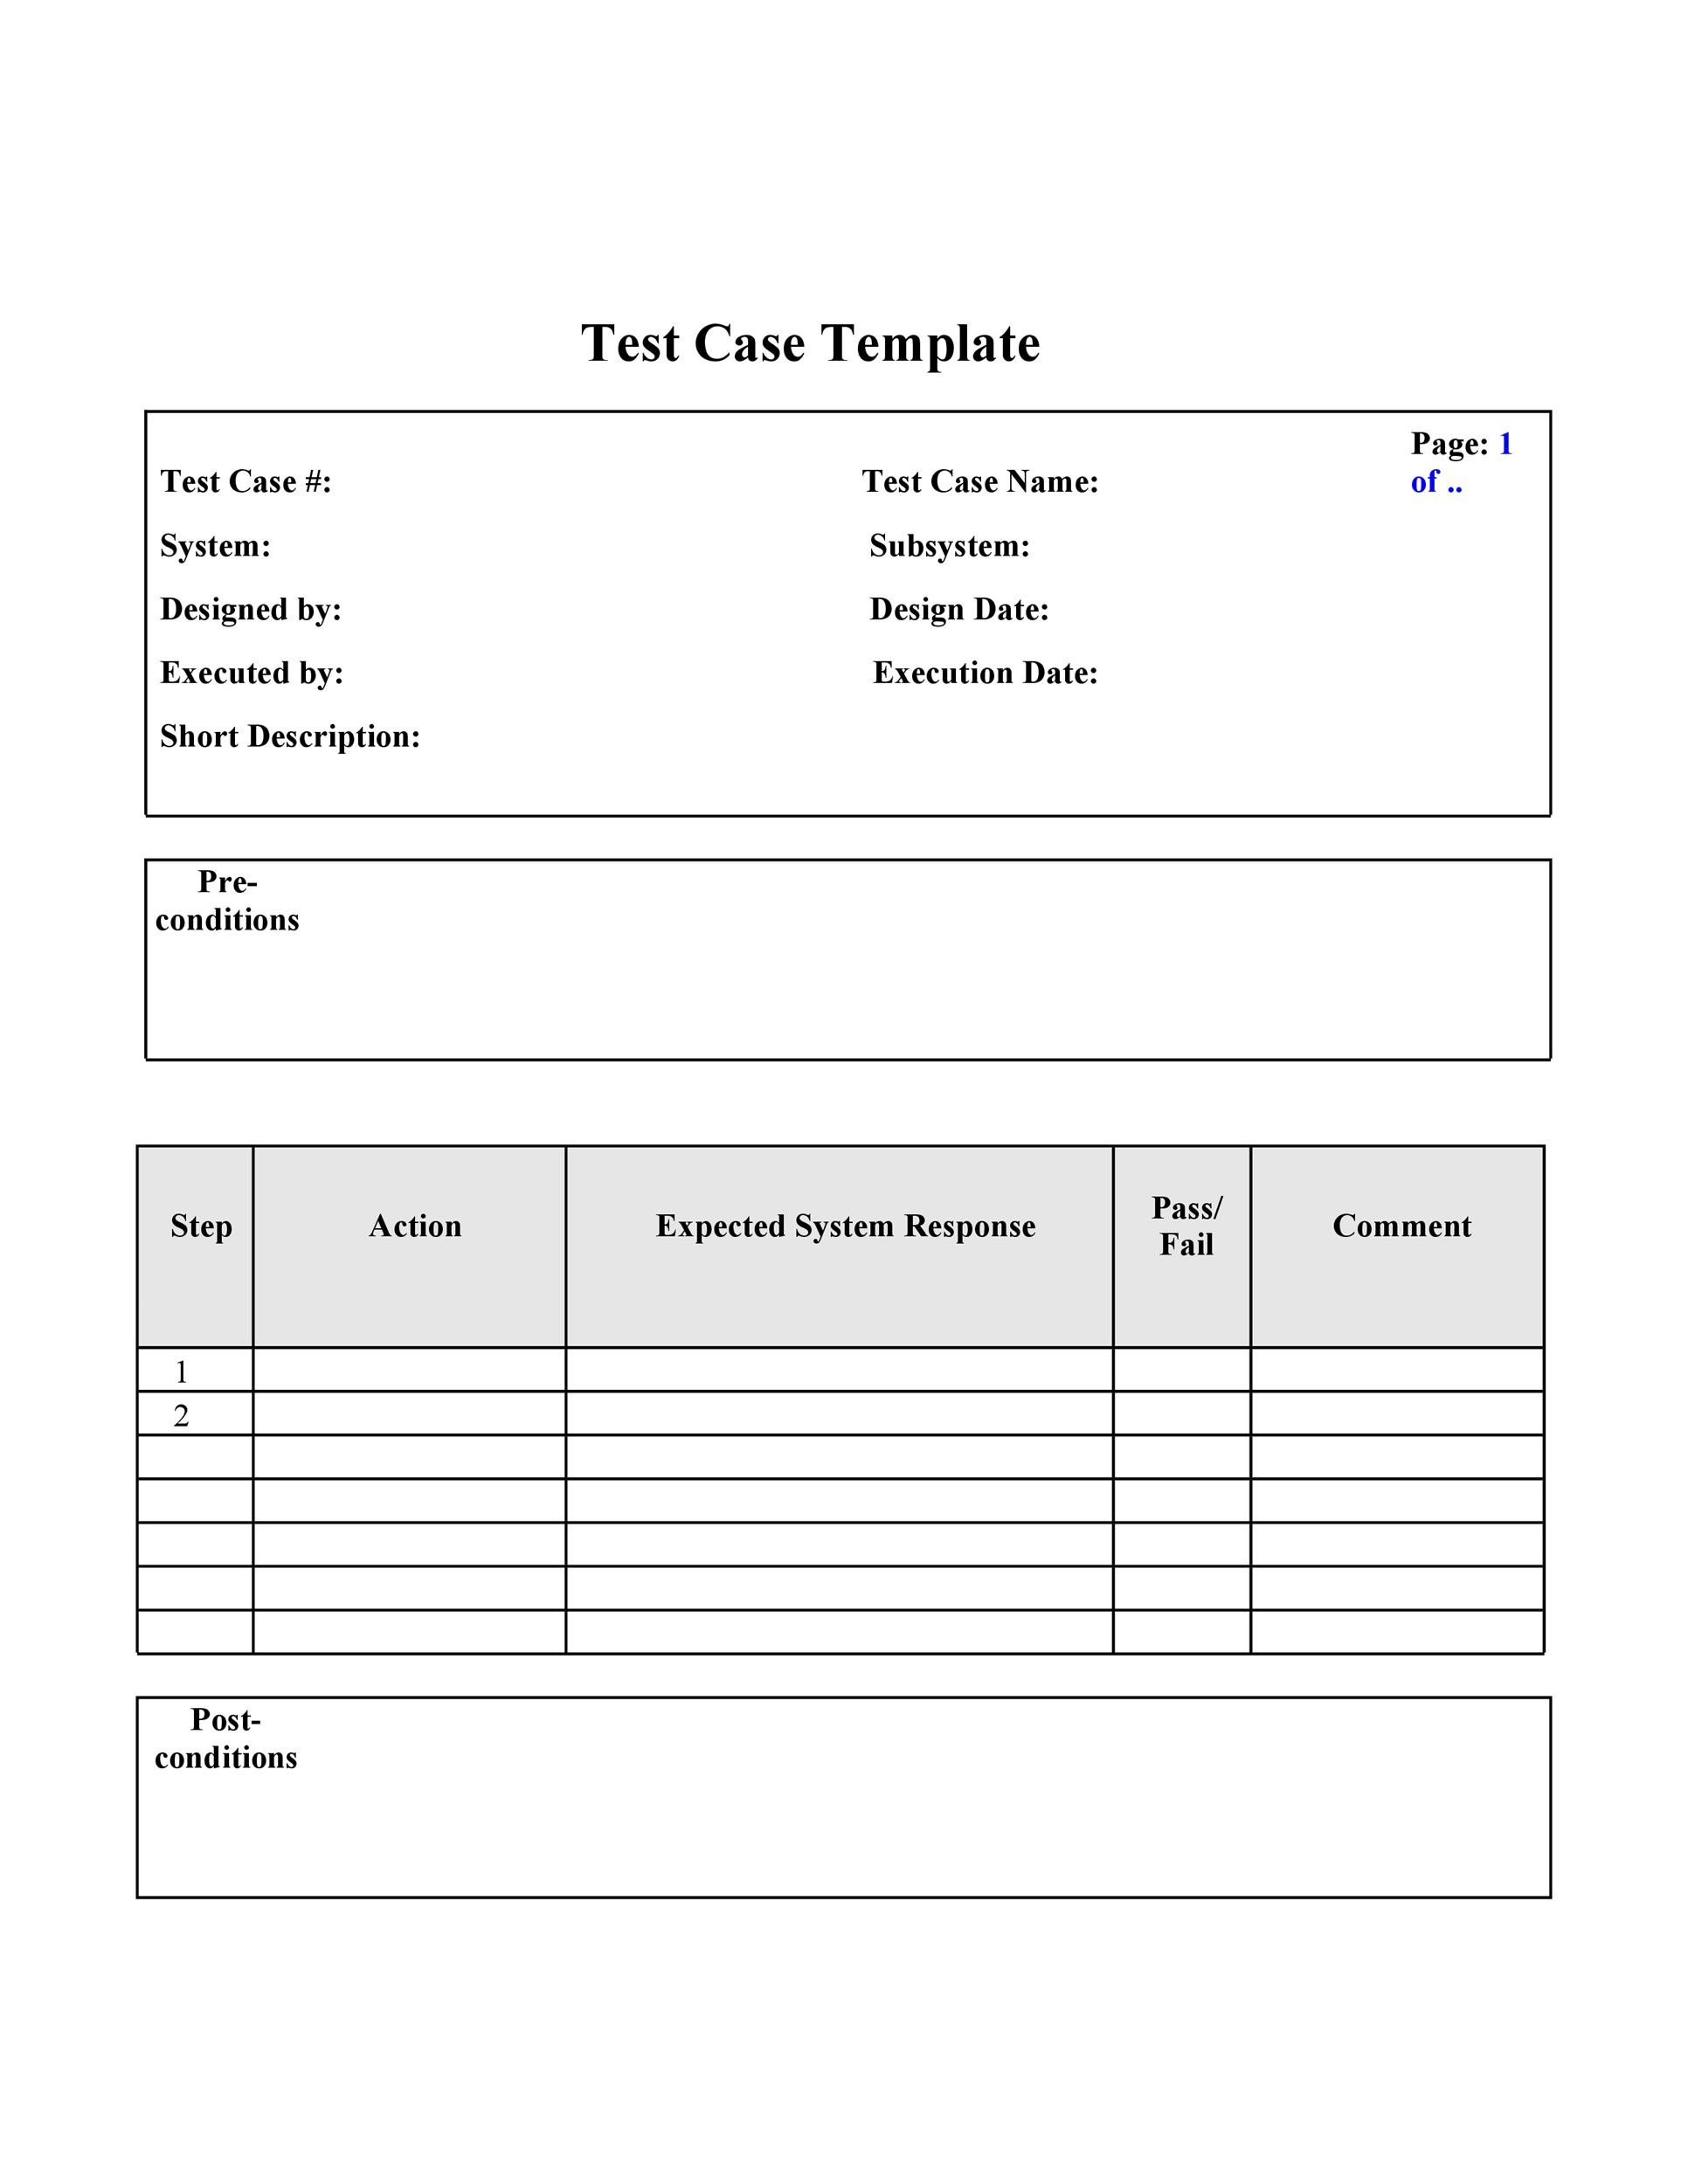 Free test case template 40